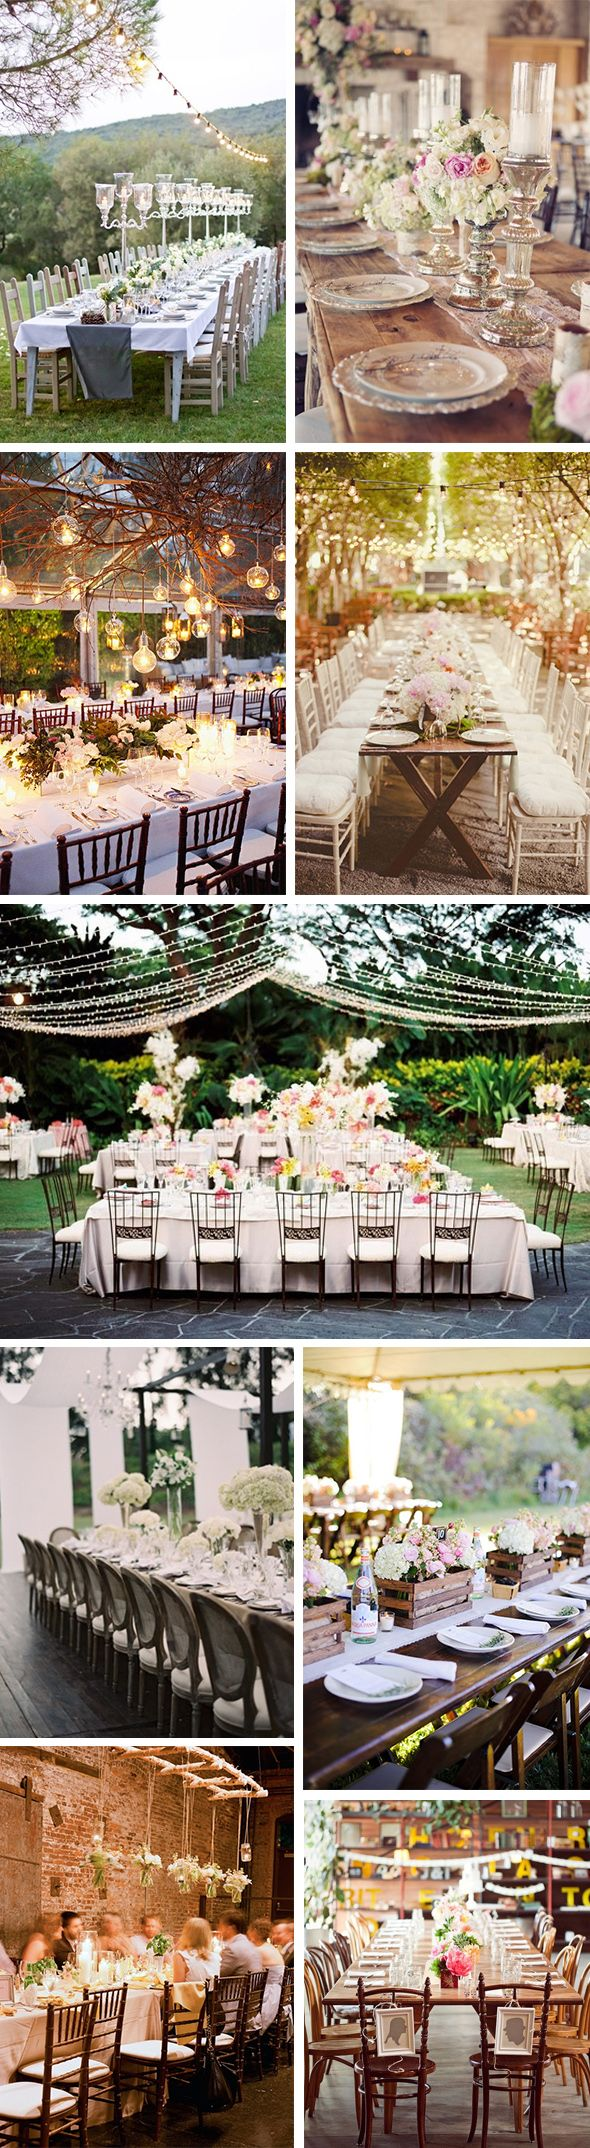 I'm a sucker for long wedding tables!